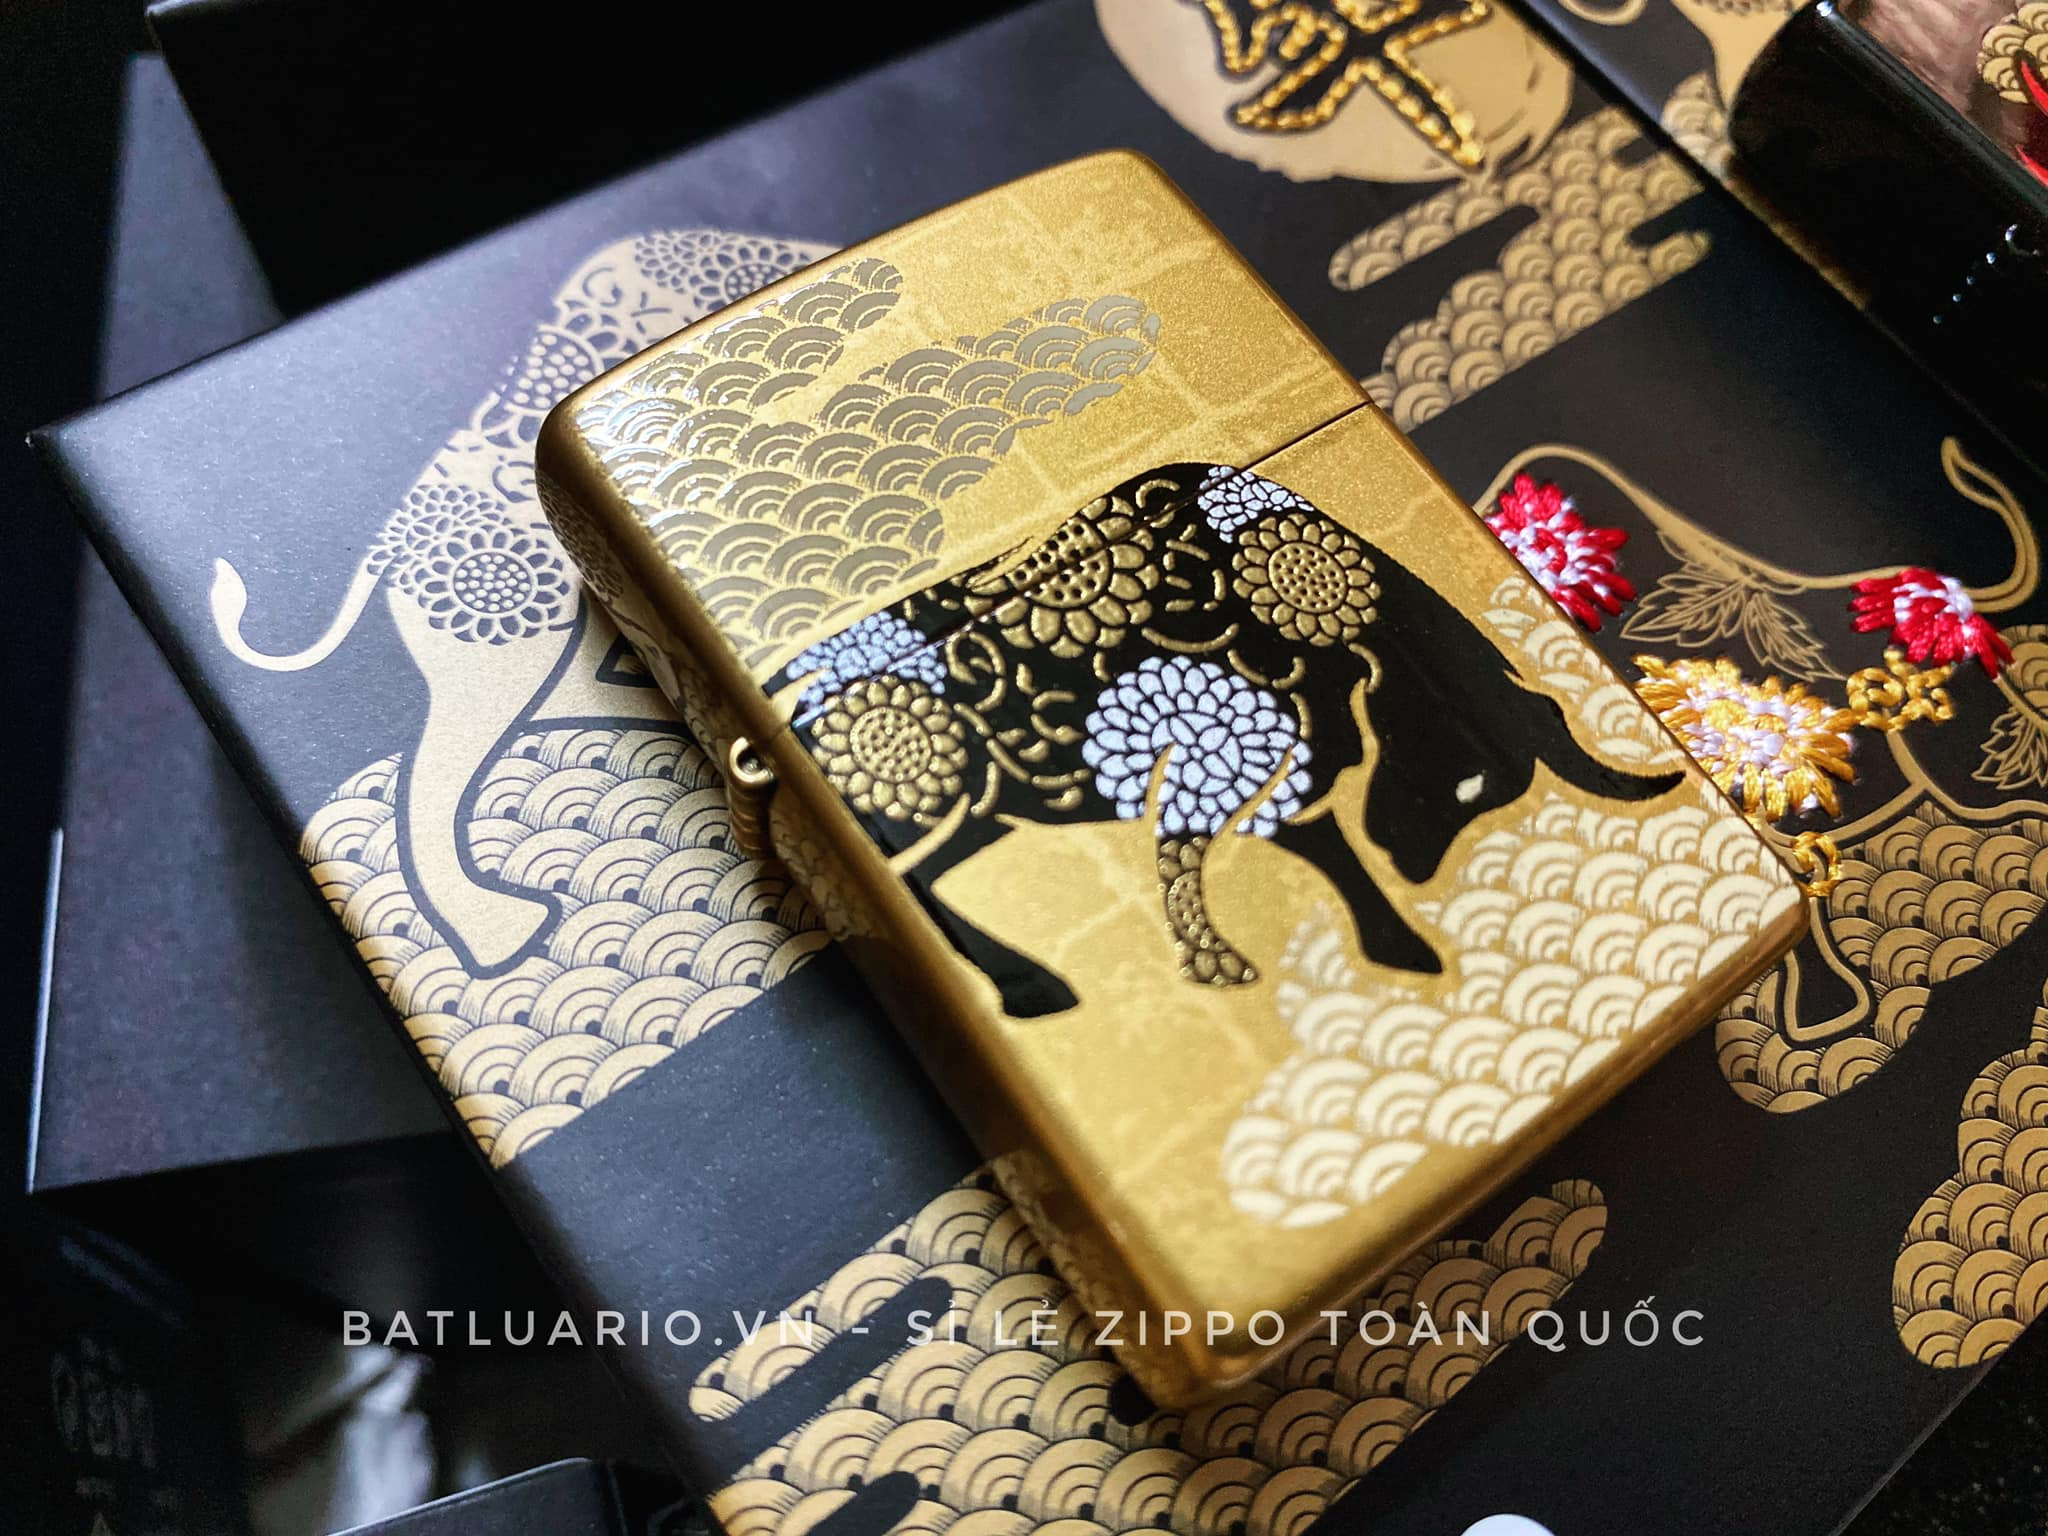 Zippo Year Of The Ox Gold Asia Limited Edition - Zippo CZA-2-18A 11